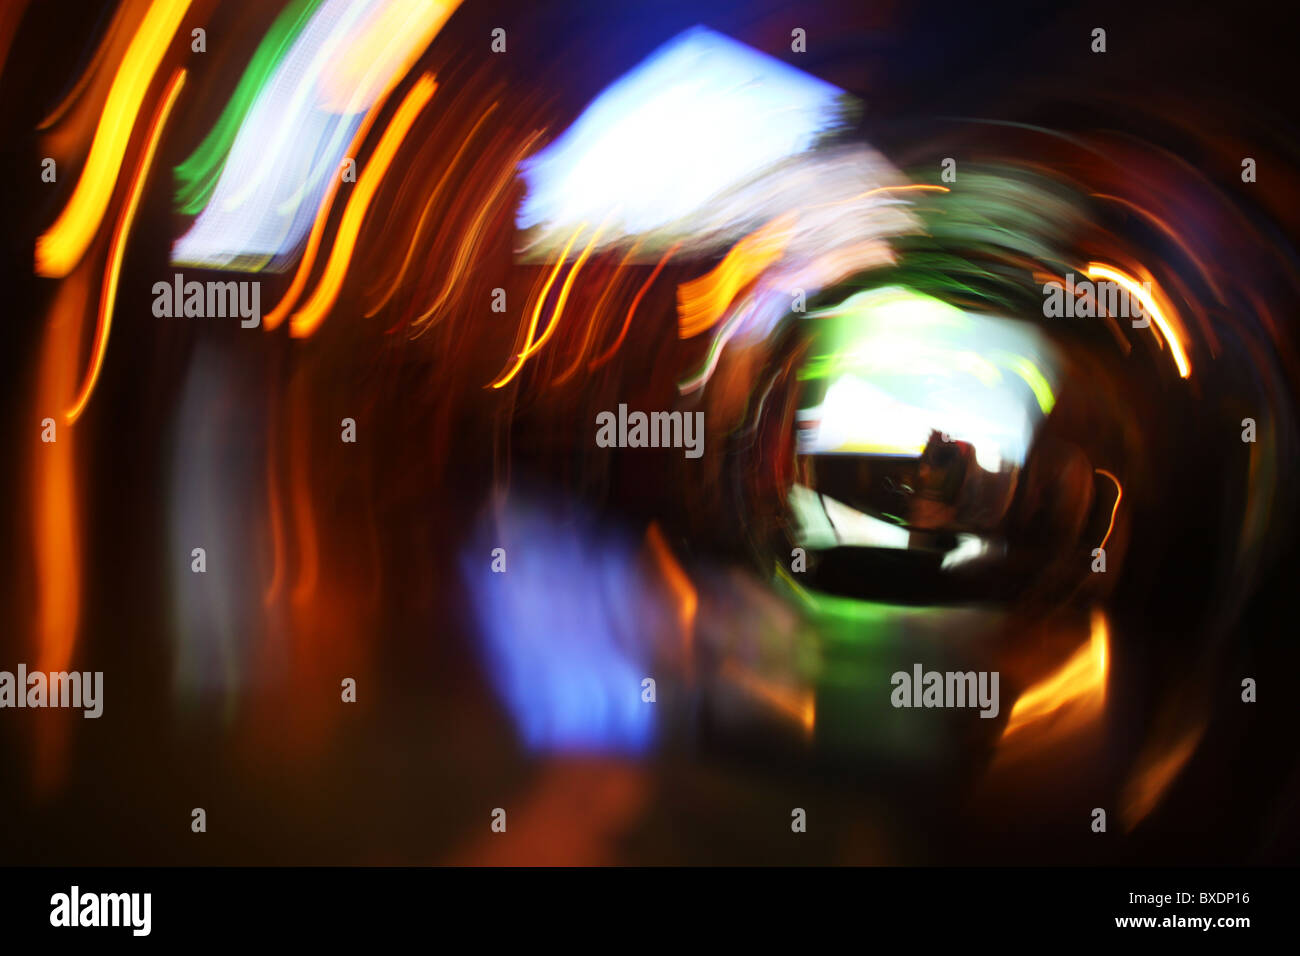 Abstract light trails blur of bar at night - Stock Image